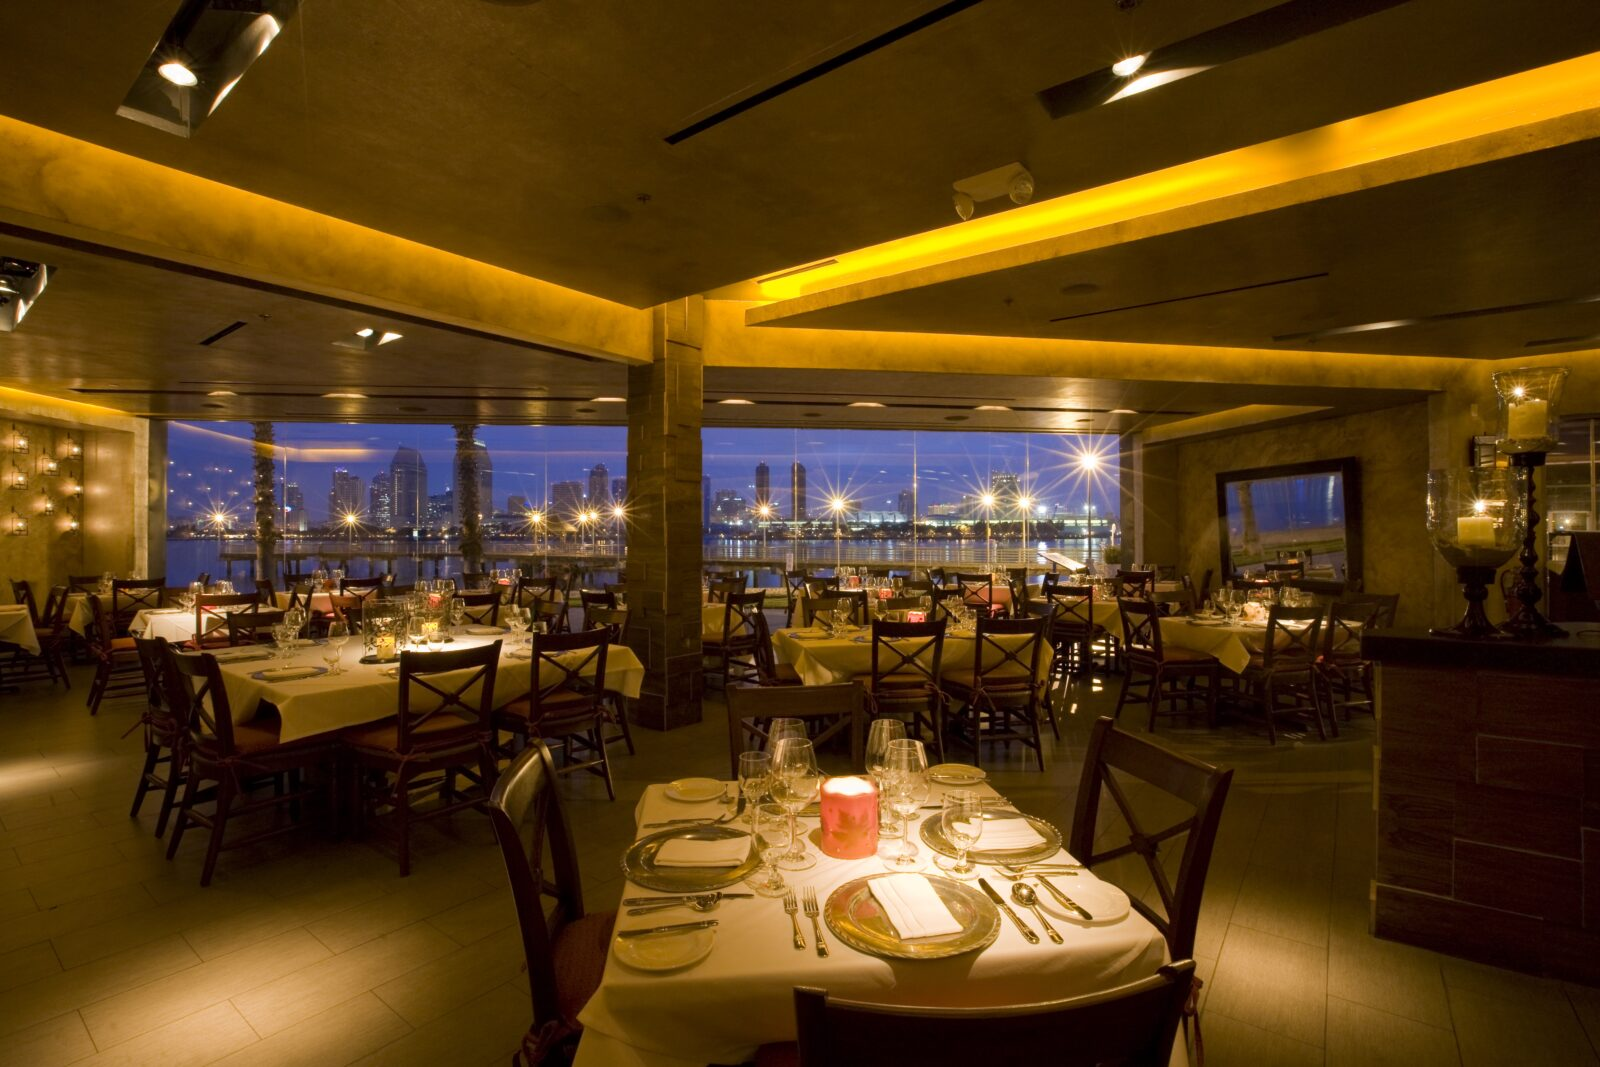 Bayfront Restaurant on Coronado Island